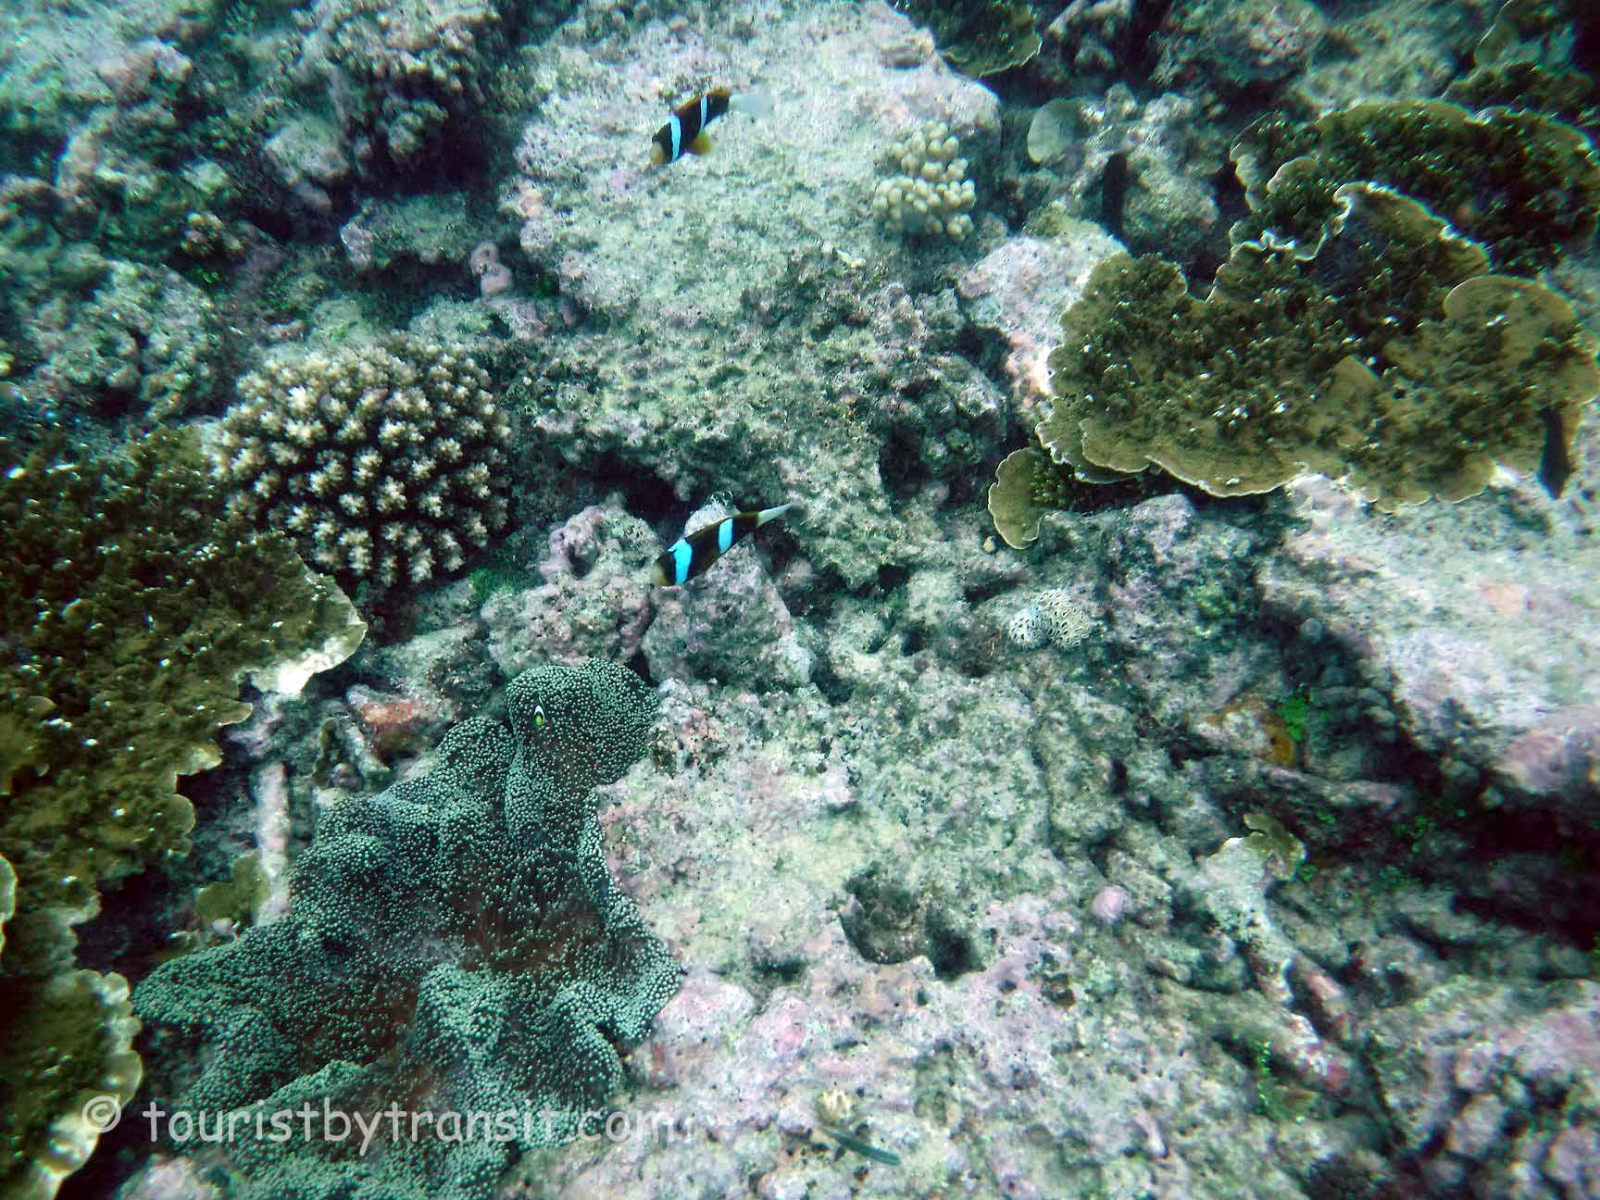 GreatBarrierReef-190322-21